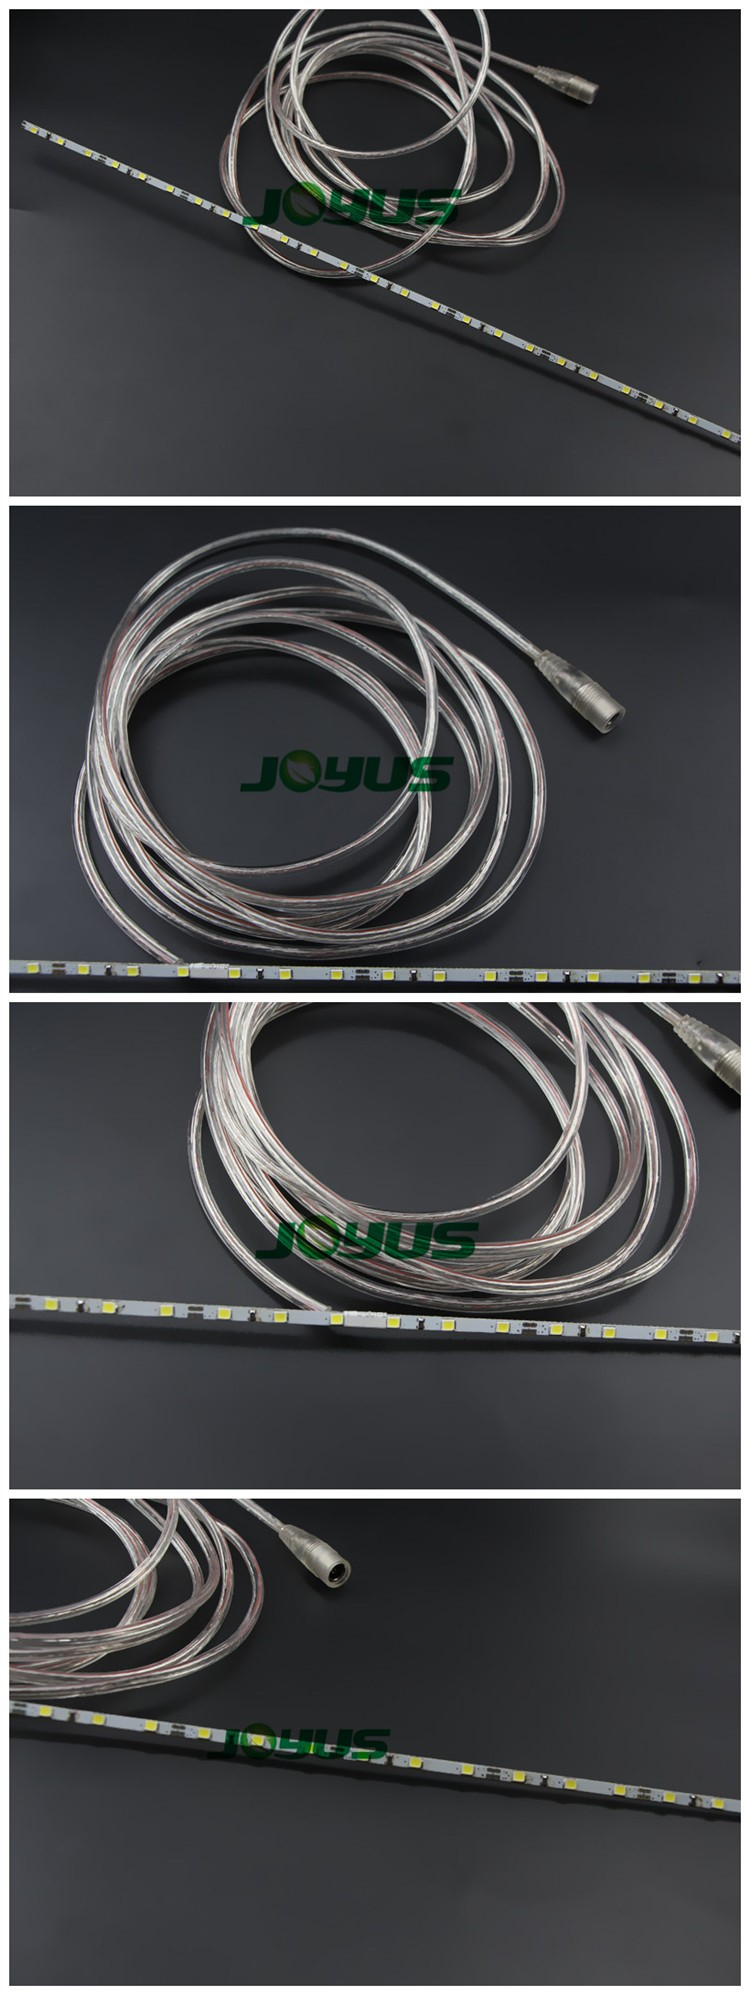 Fr4 Double Sided Pcb Printed Circuit Board Cuttable Led Strip Light Doublesided Boards Specification